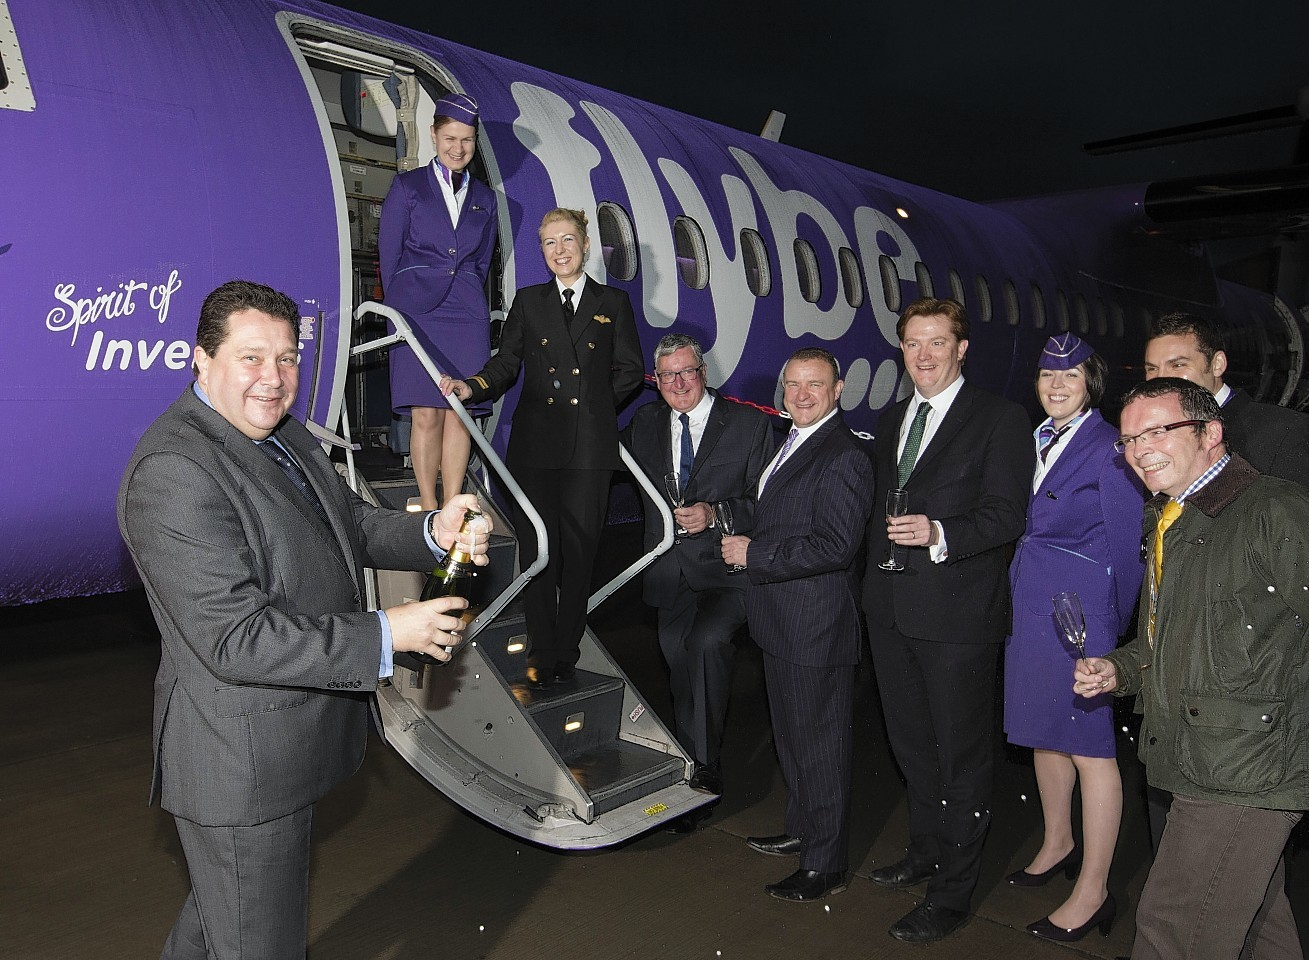 Inverness to London service